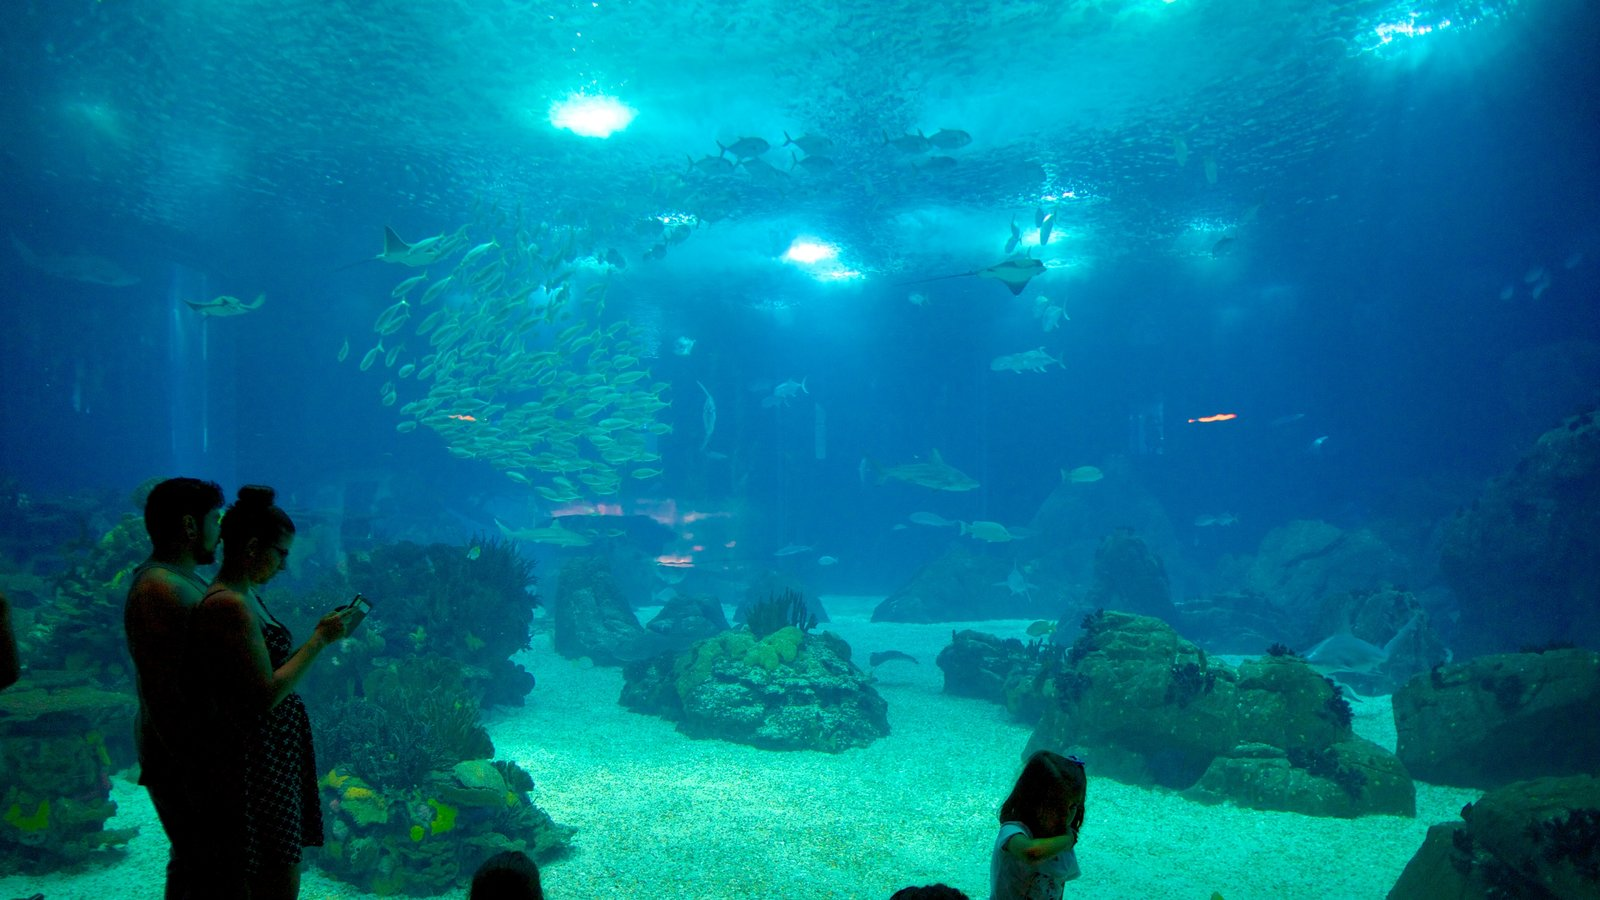 Lisbon Oceanarium which includes marine life and interior views as well as a couple